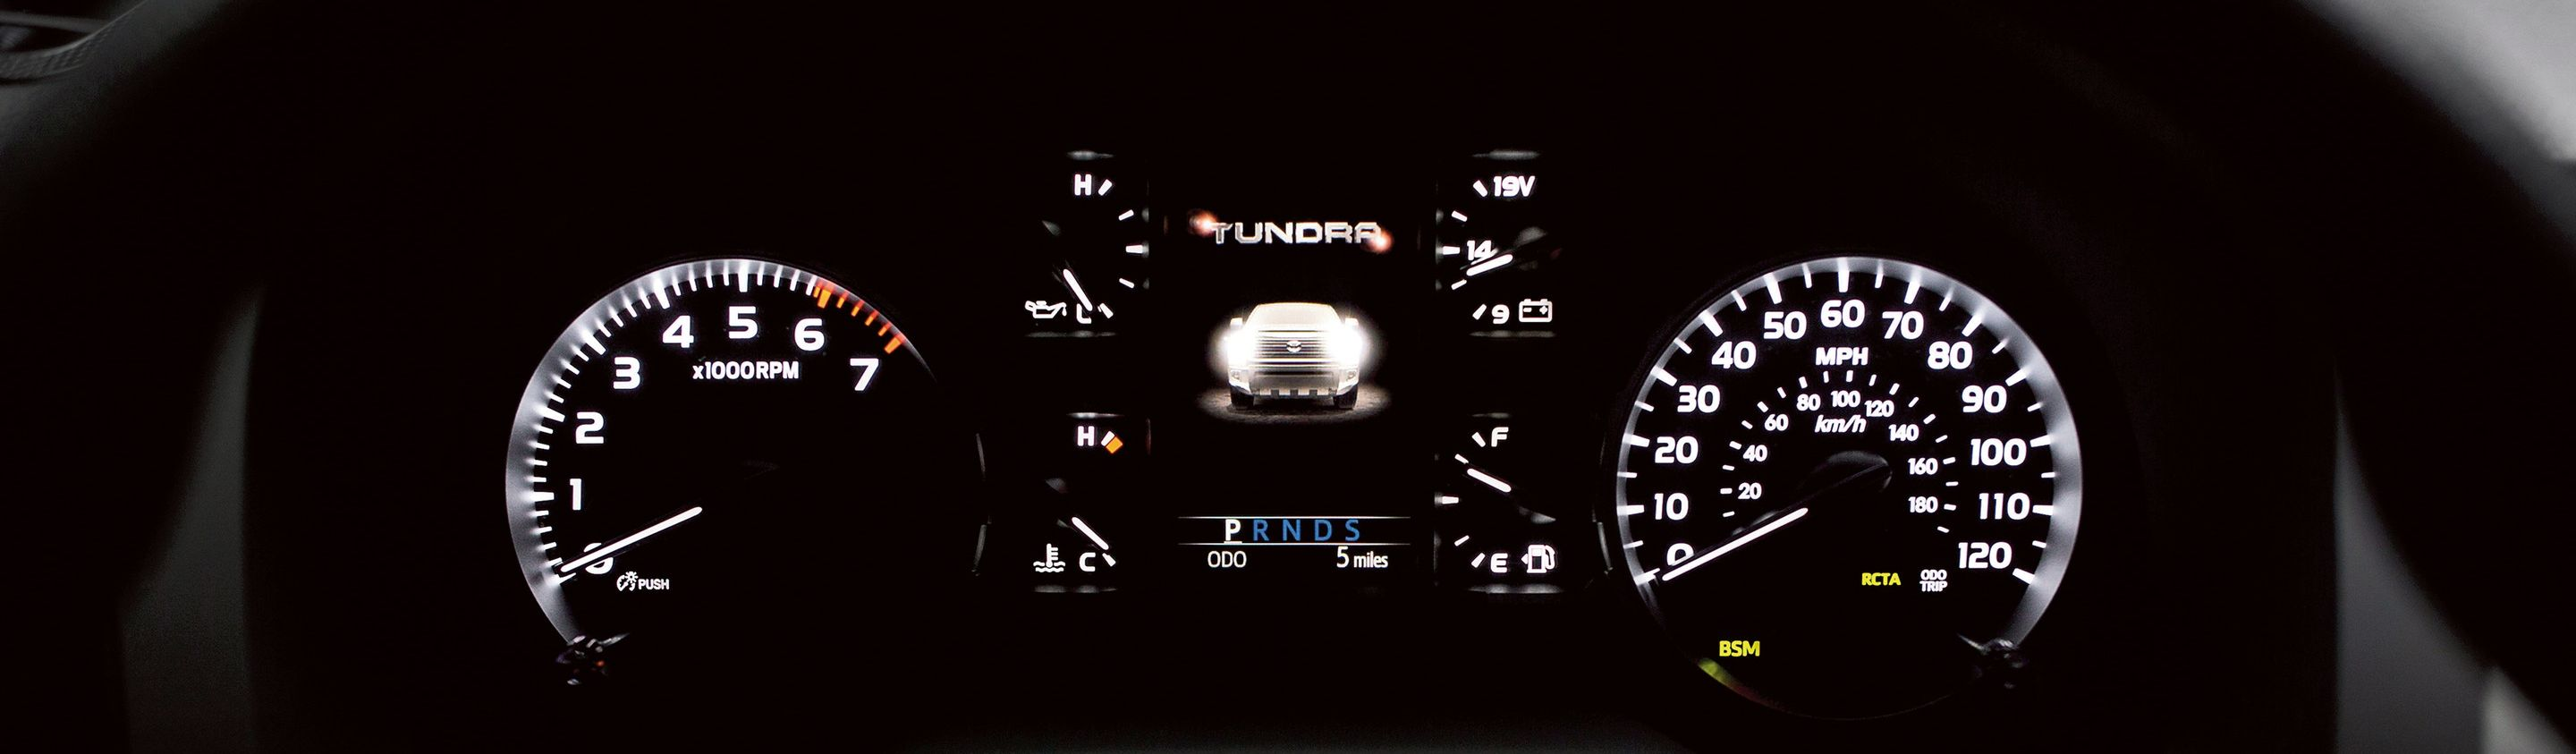 2019 Toyota Tundra Instrument Cluster